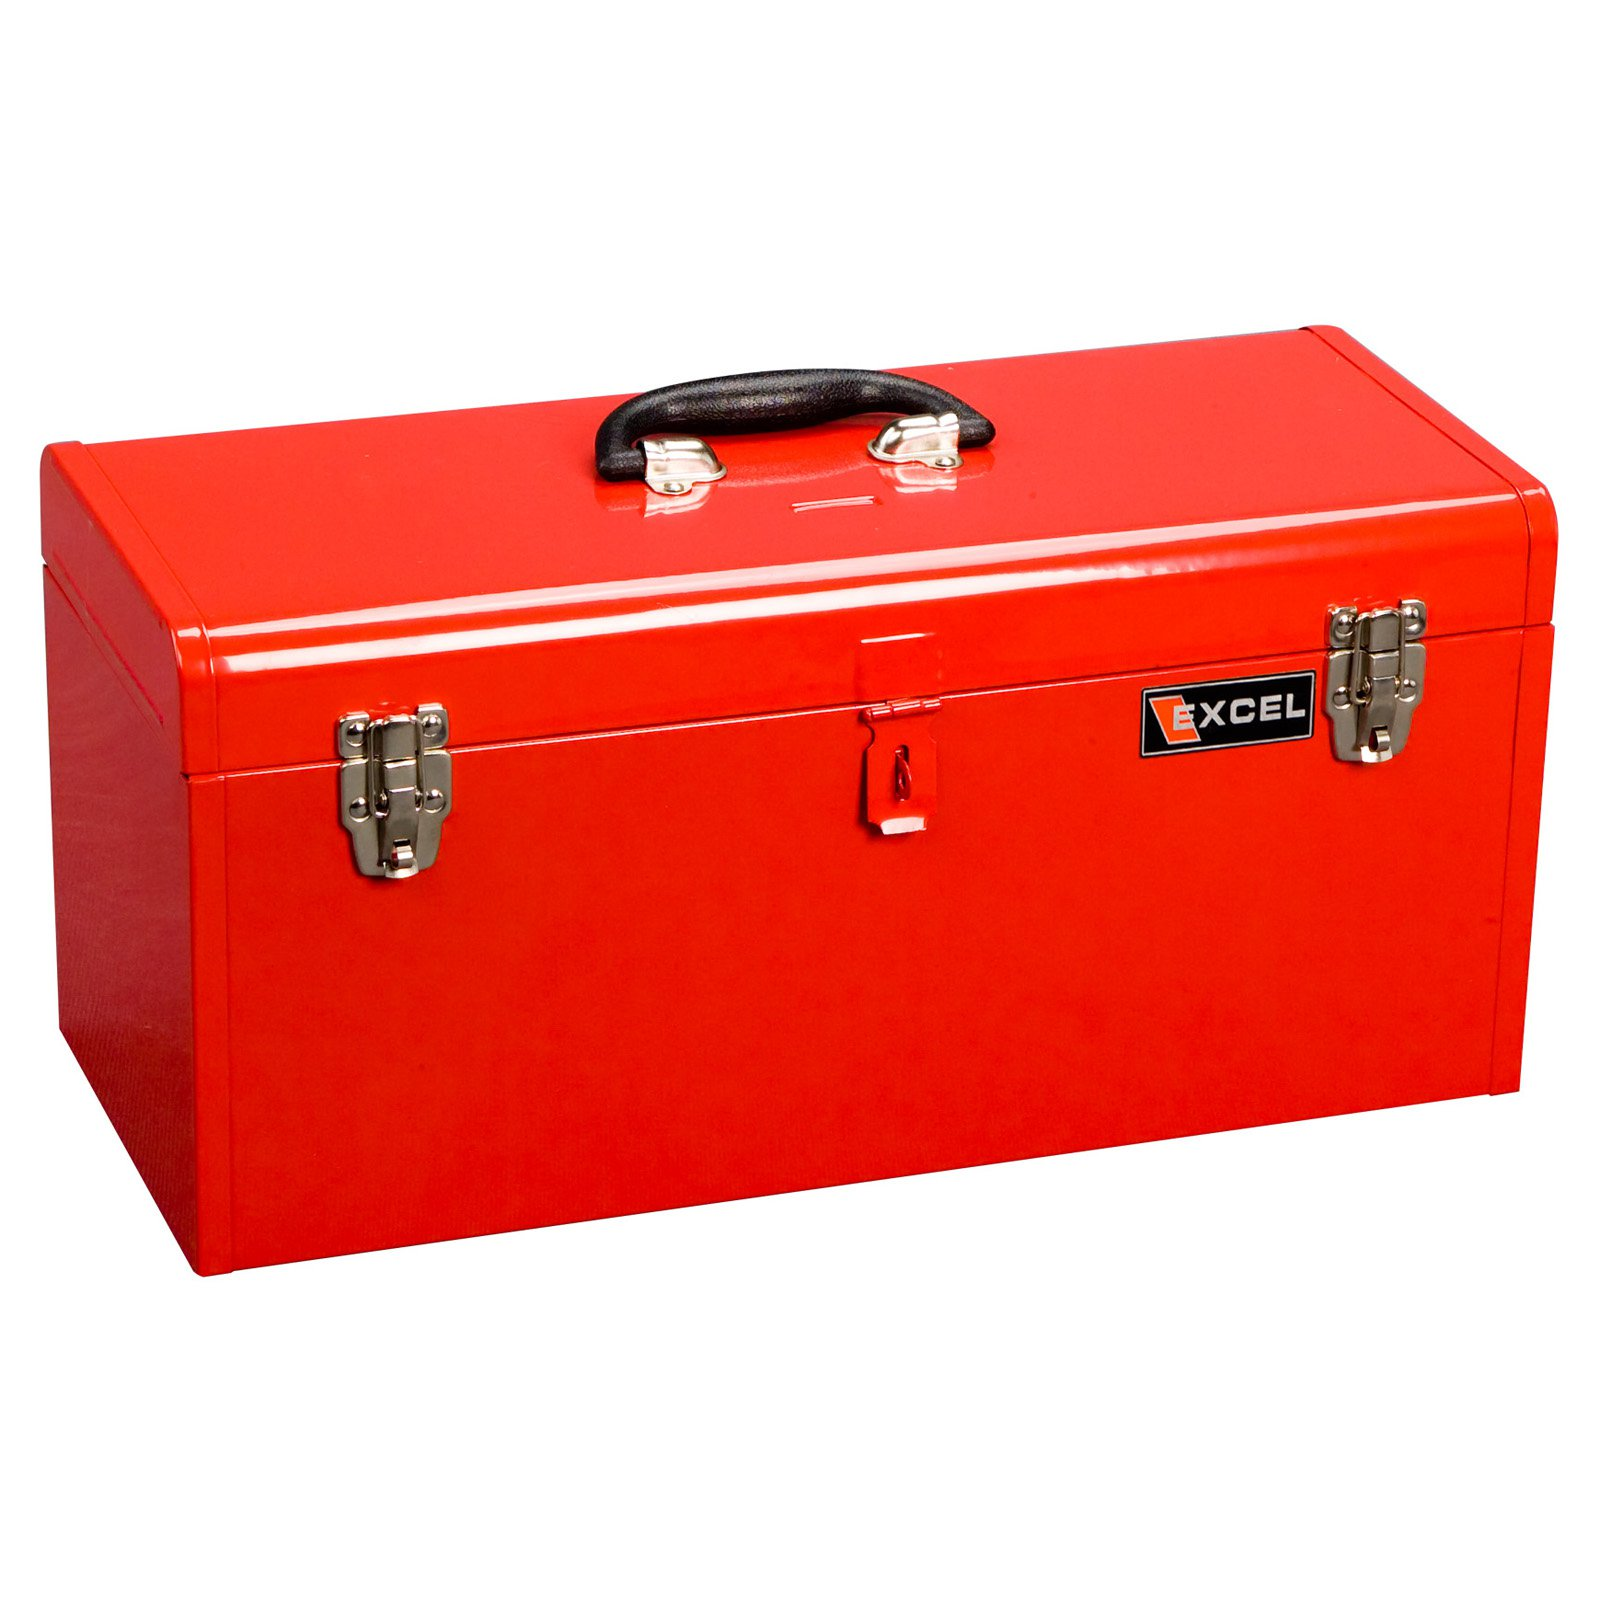 Excel 20 in. Portable Lift-out Tray Steel Tool Box